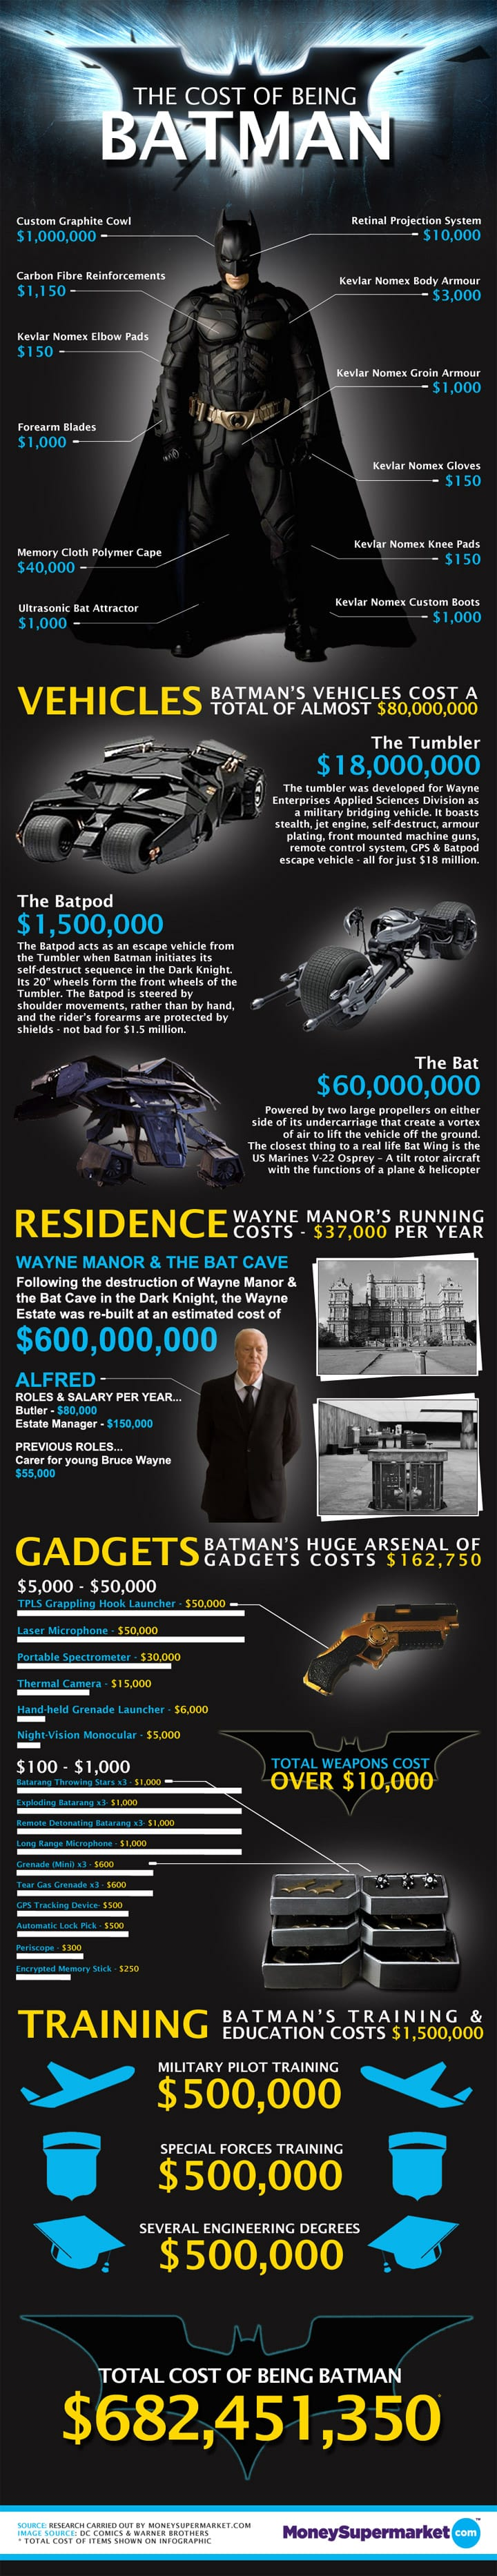 http://www.thisblogrules.com/wp-content/uploads/2012/07/The-Cost-of-Being-Batman-Infographic.jpeg